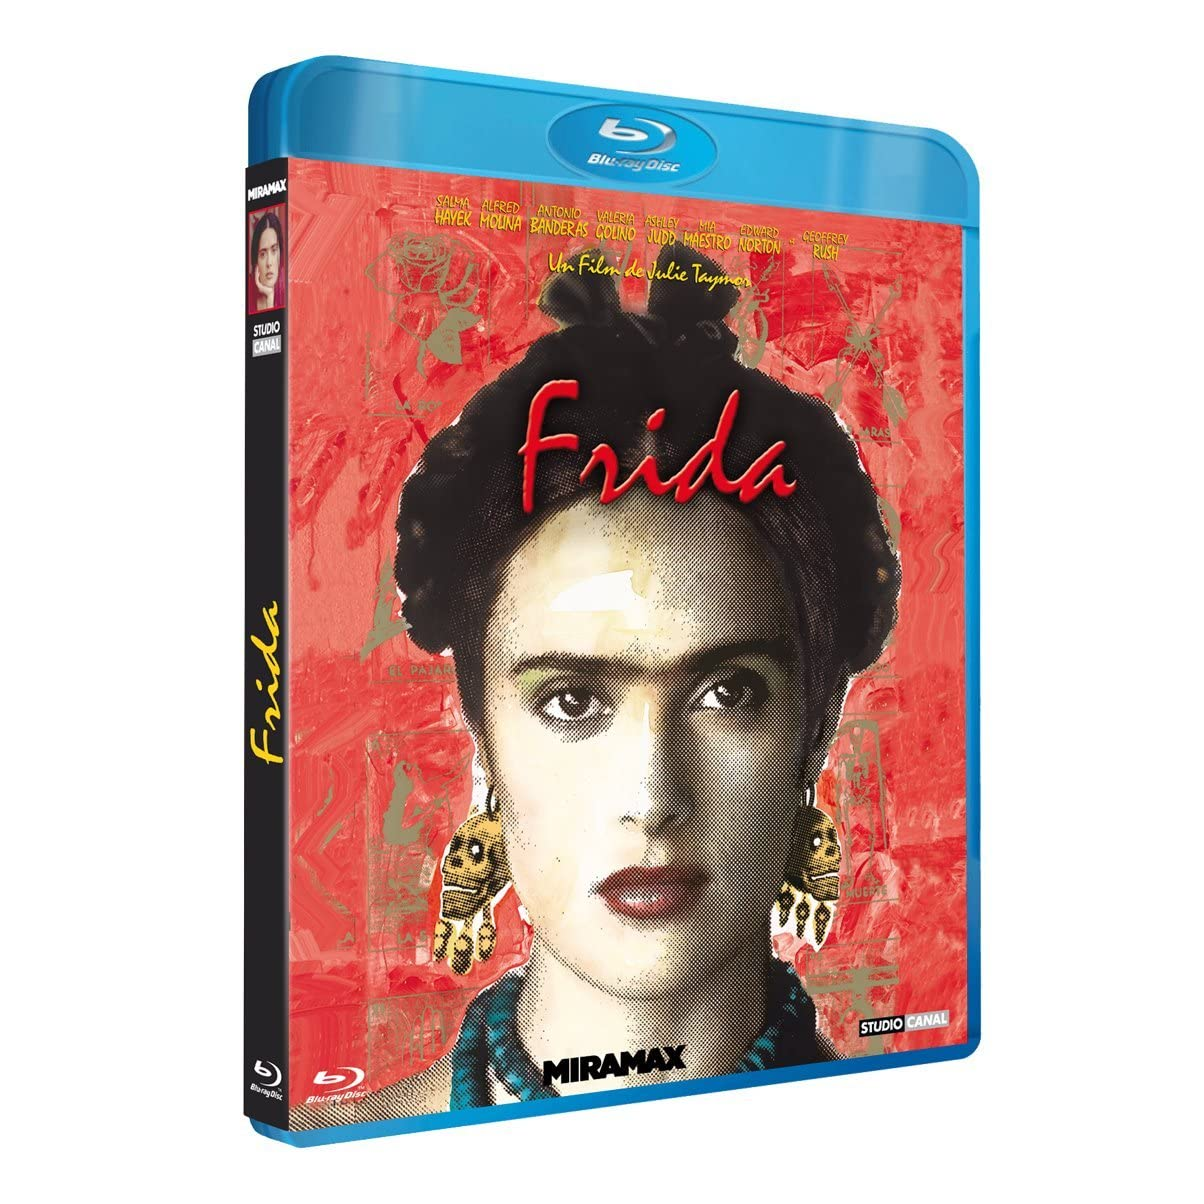 [MULTI] Frida [BRRip][VOSTFR][AC3]